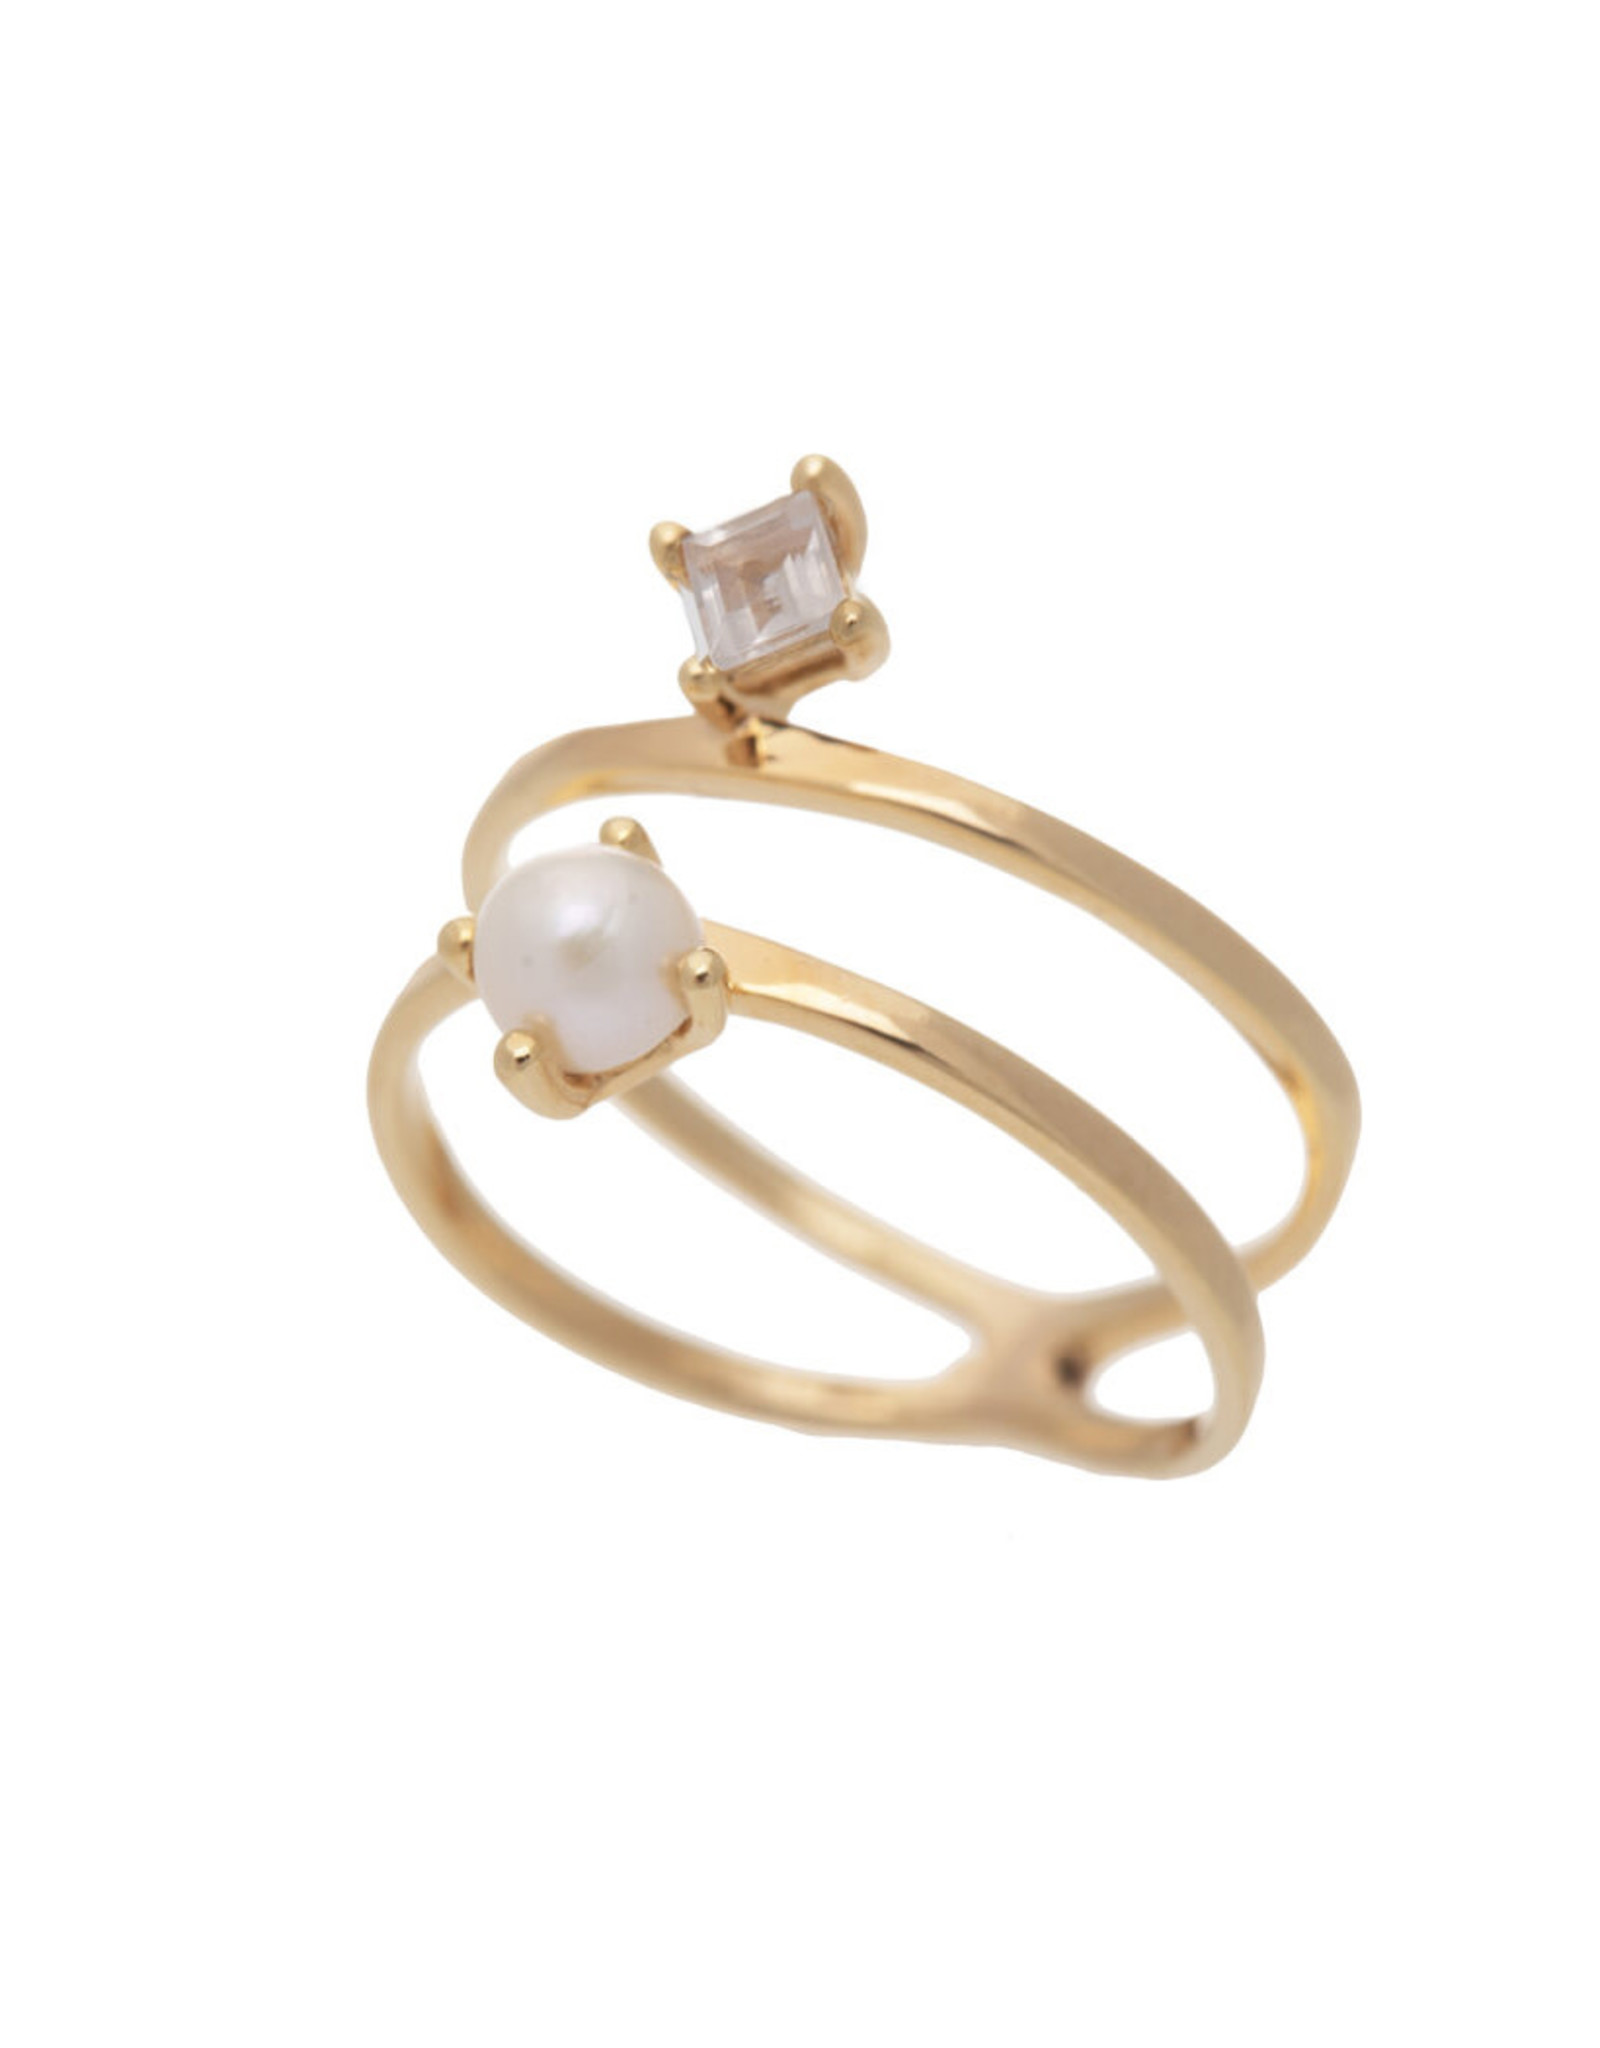 Sarah Mulder Jewelry Gold Cassie Ring - Rose Quartz + Pearl - 5